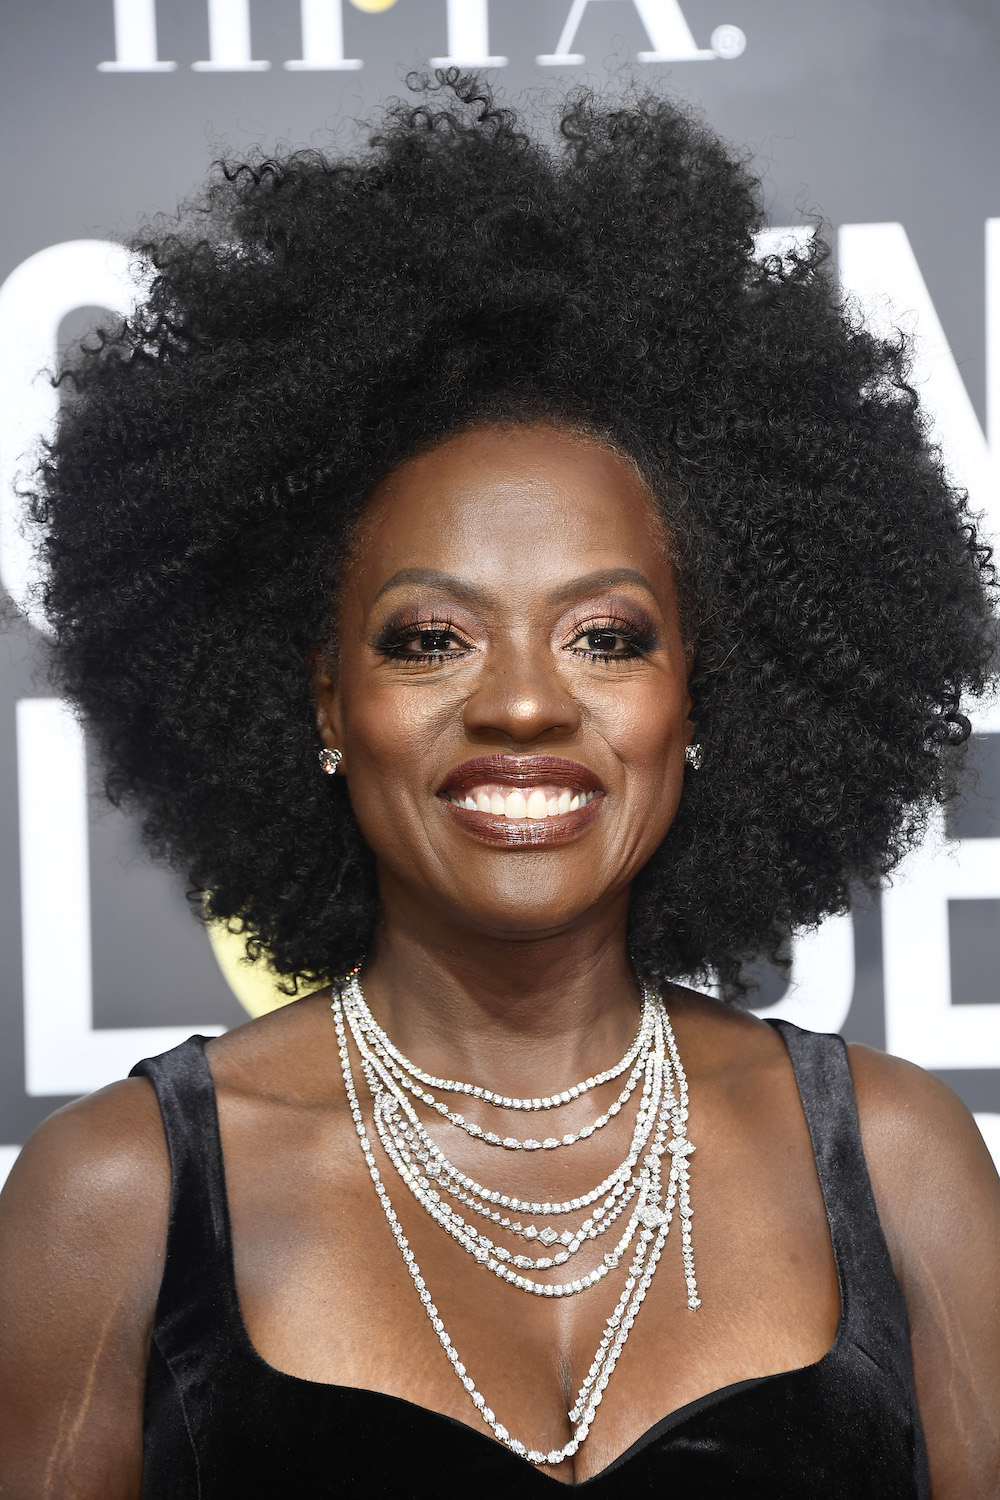 Viola Davis Rocked Her Natural Hair At The 2018 Golden Globes And Twitter Is Loving It